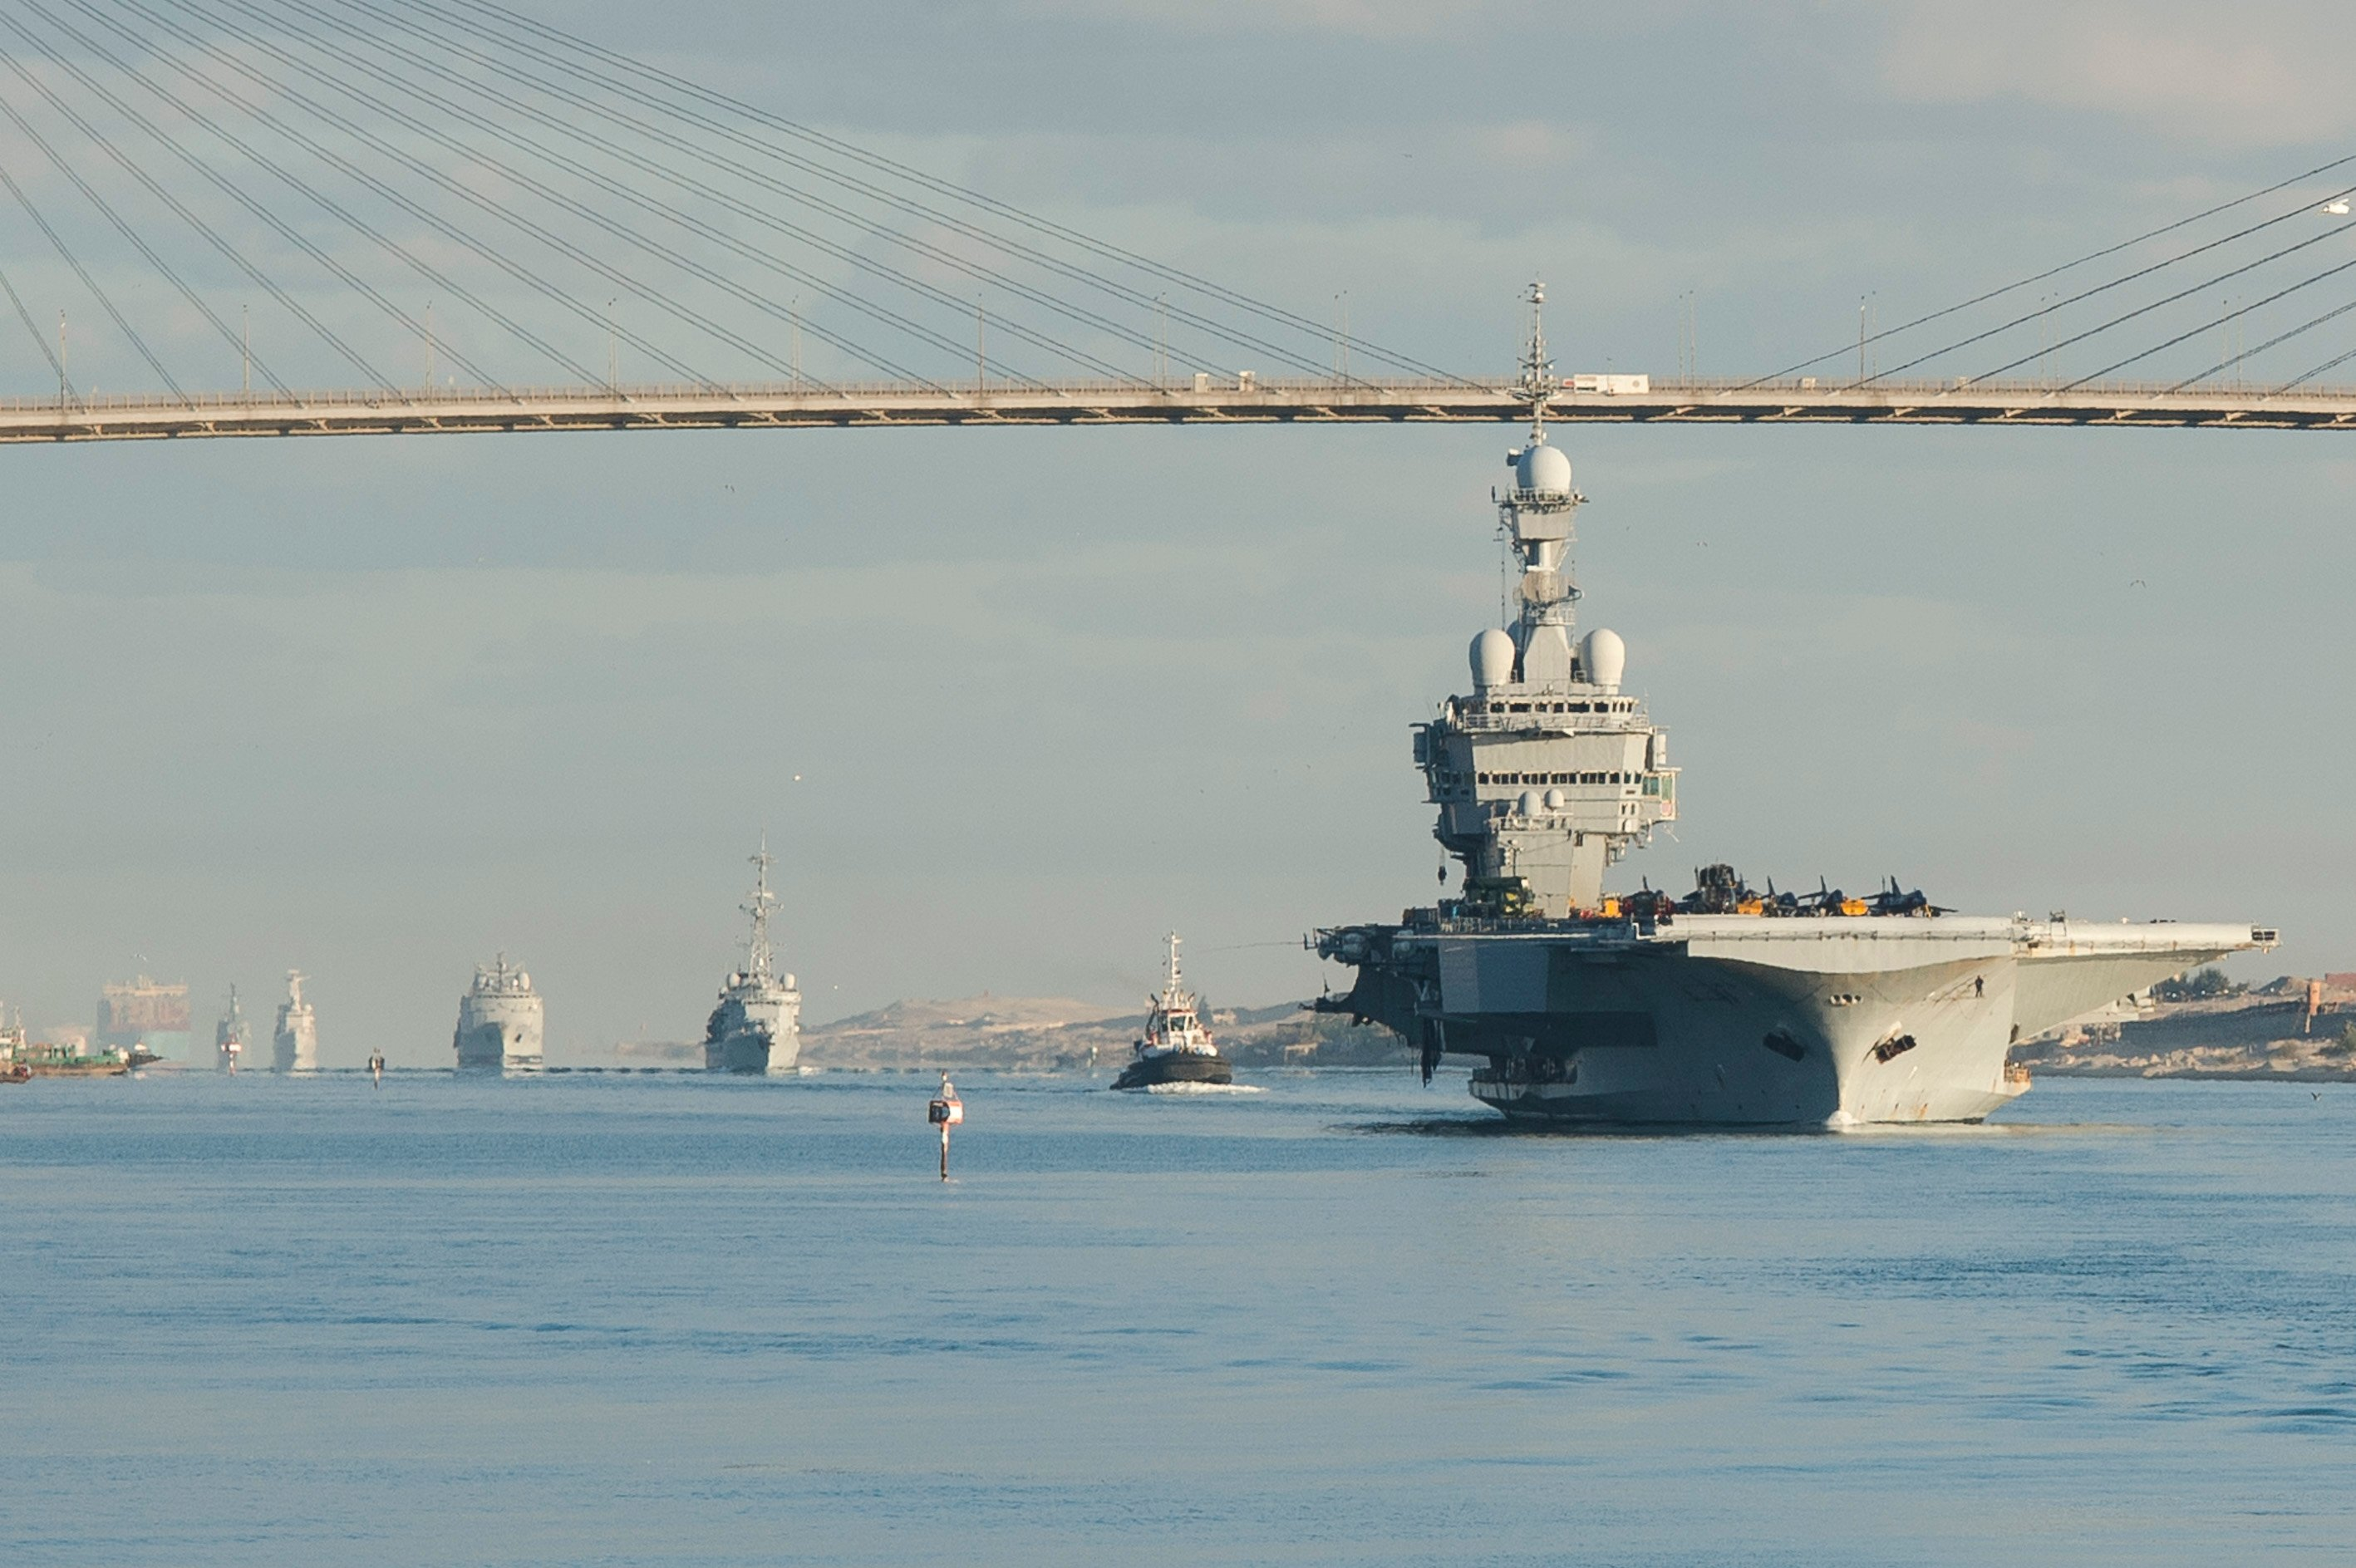 The French navy nuclear aircraft carrier Charles de Gaulle (R91) transits the Suez Canal on Dec. 7, 2015, as it enters the U.S. 5th Fleet area of operations. French Navy photo.